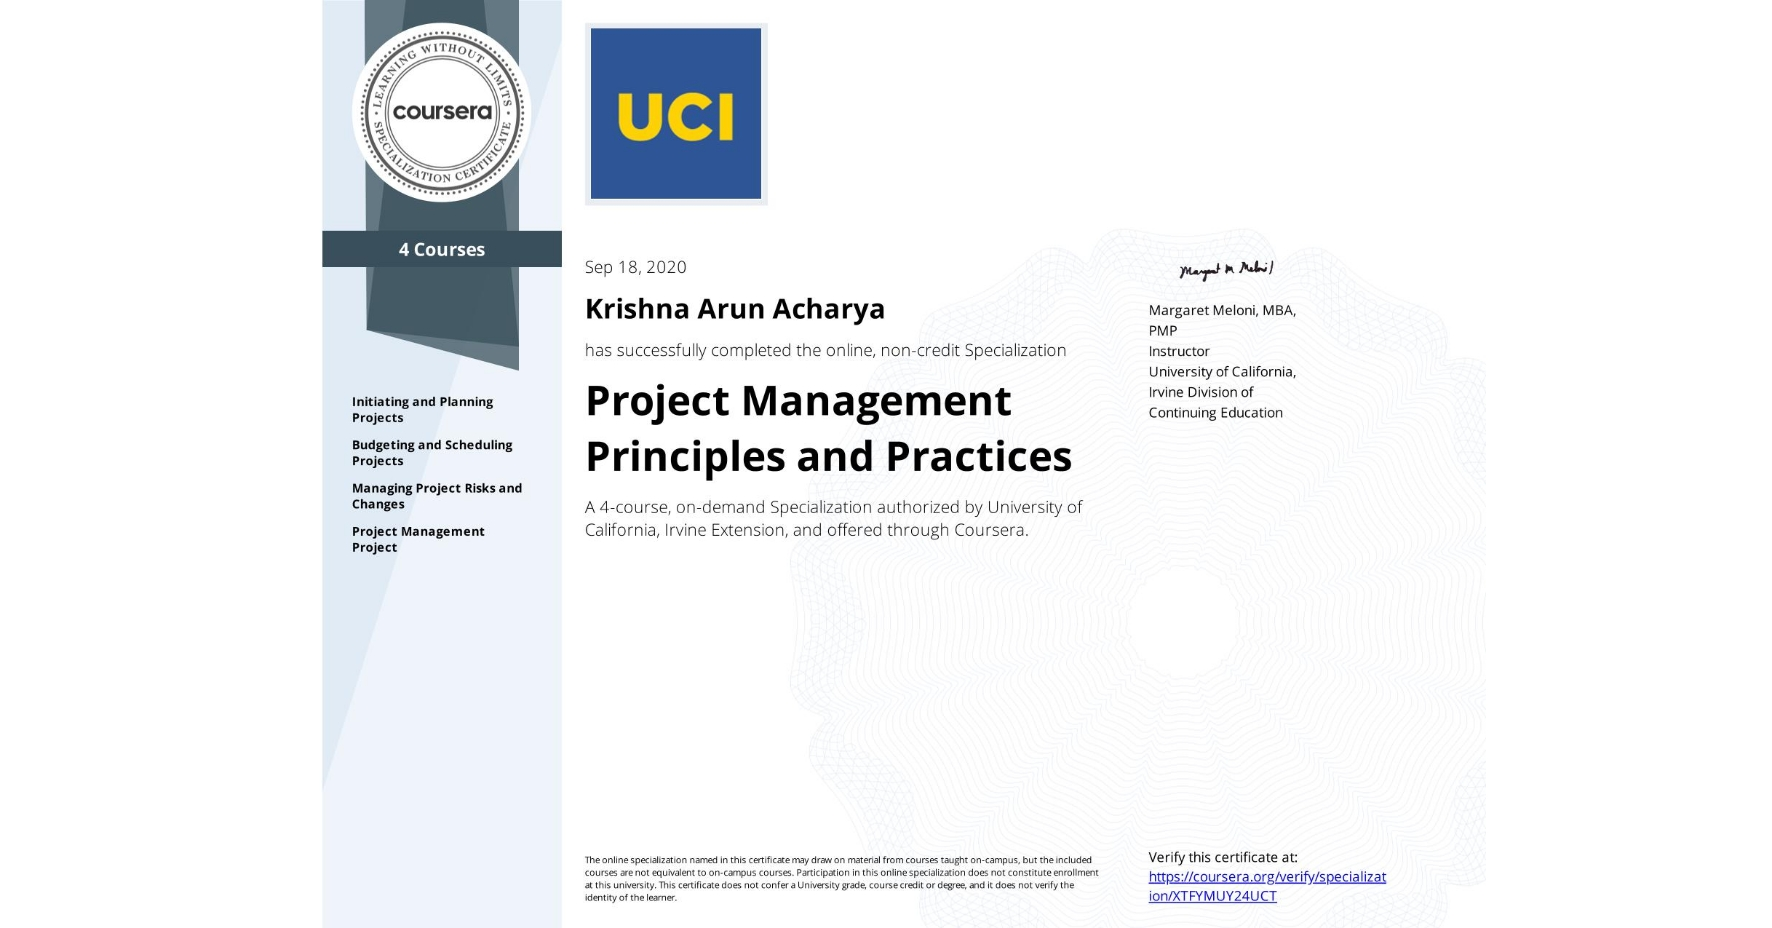 View certificate for Krishna Arun Acharya, Project Management Principles and Practices, offered through Coursera. A 4-course, on-demand Specialization authorized by University of California, Irvine Extension, and offered through Coursera.